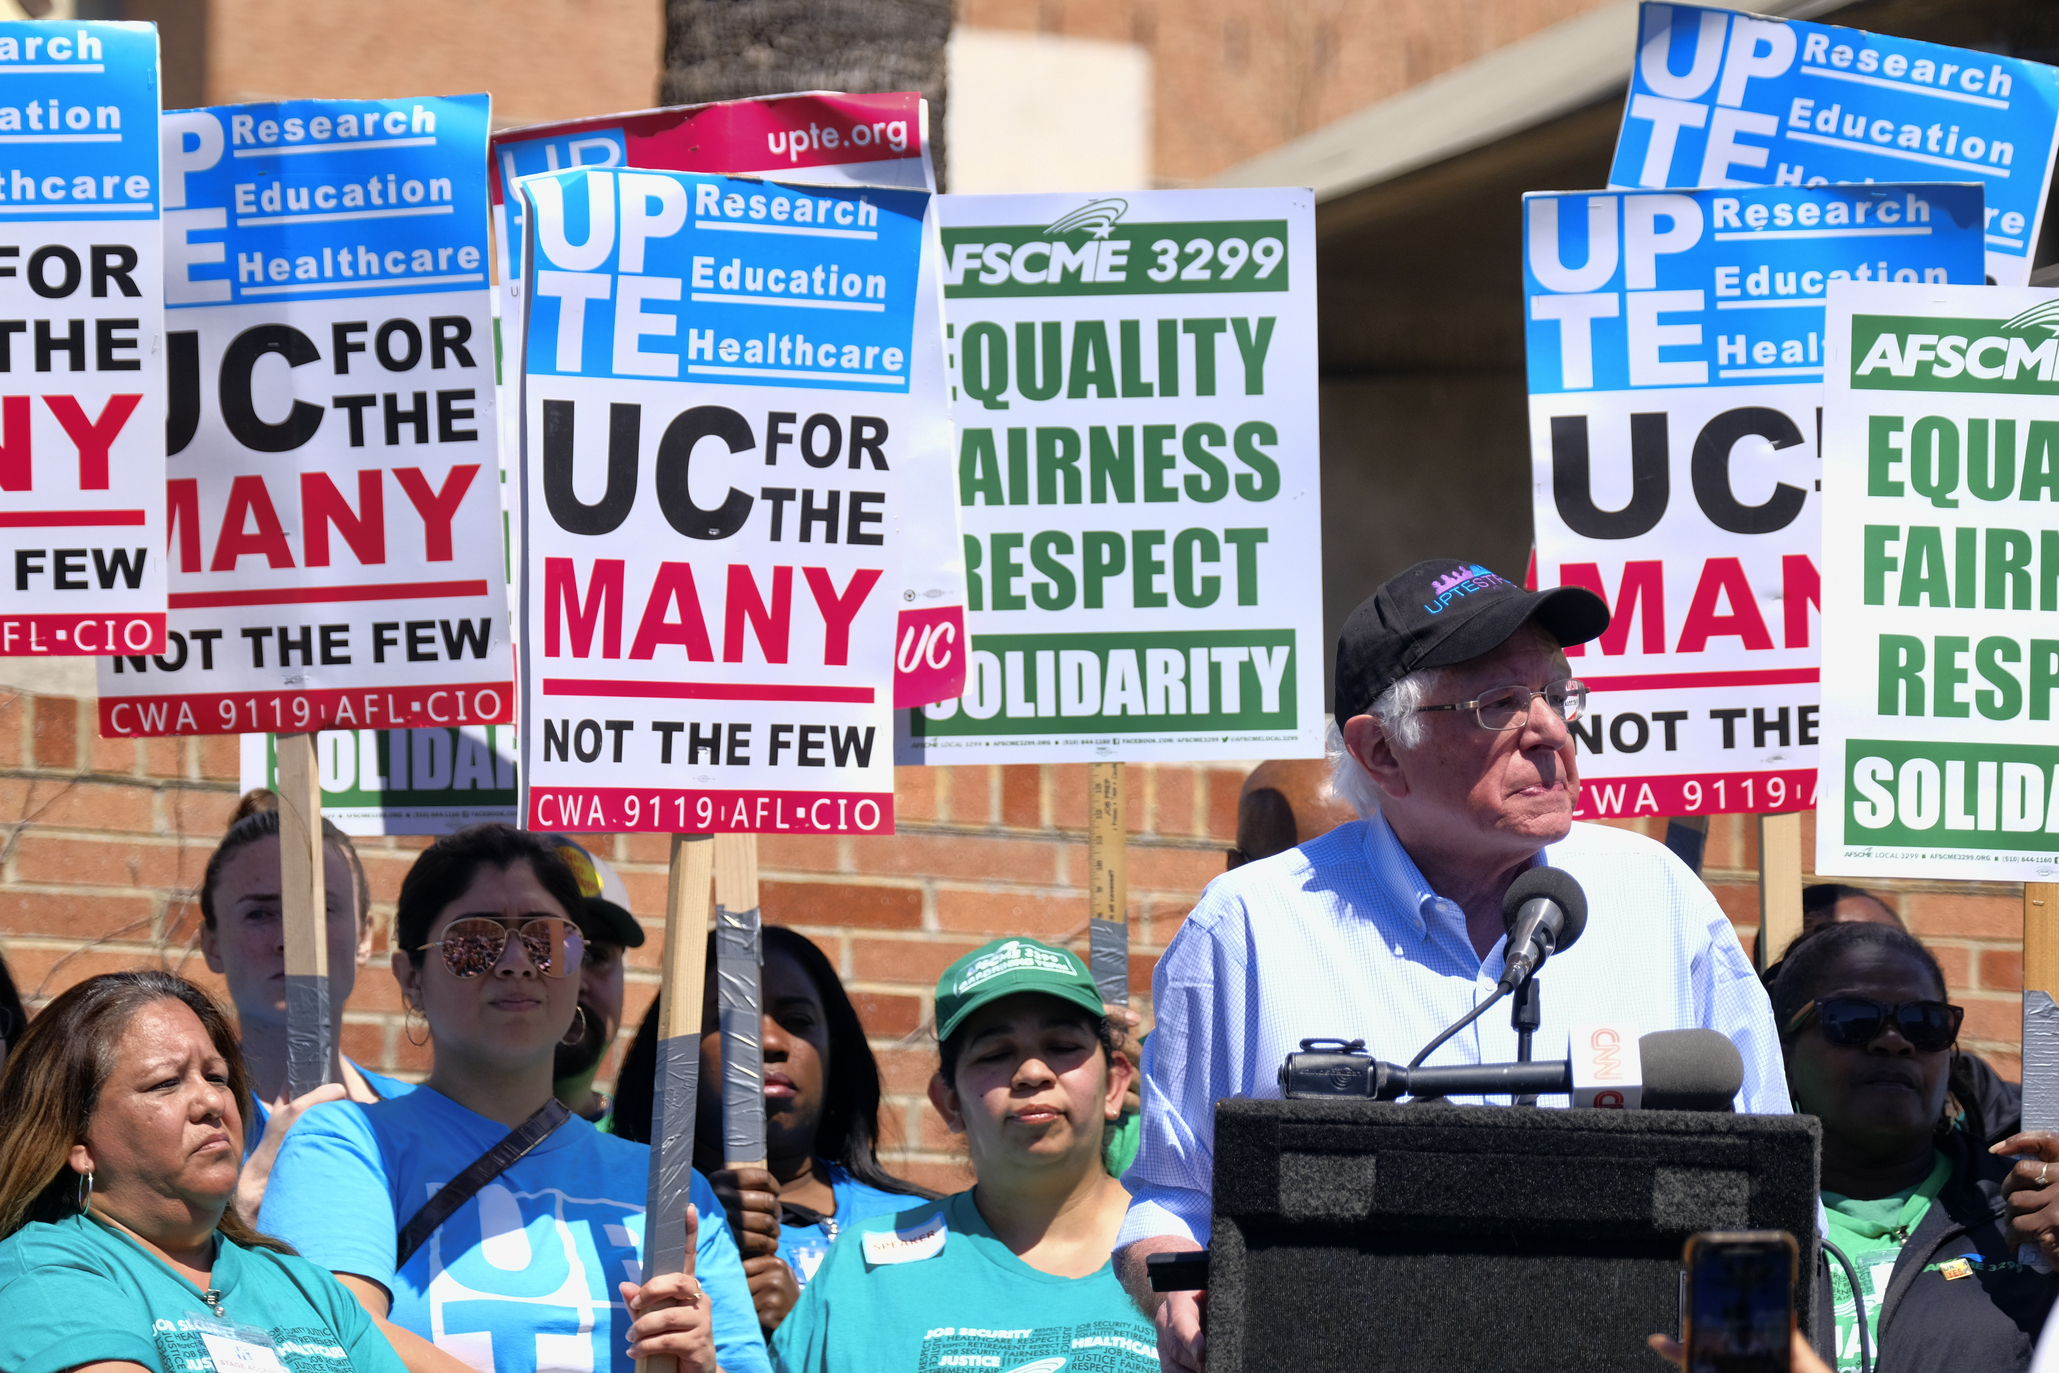 UC Service, Patient-Care Workers Hold One-Day Strike Statewide